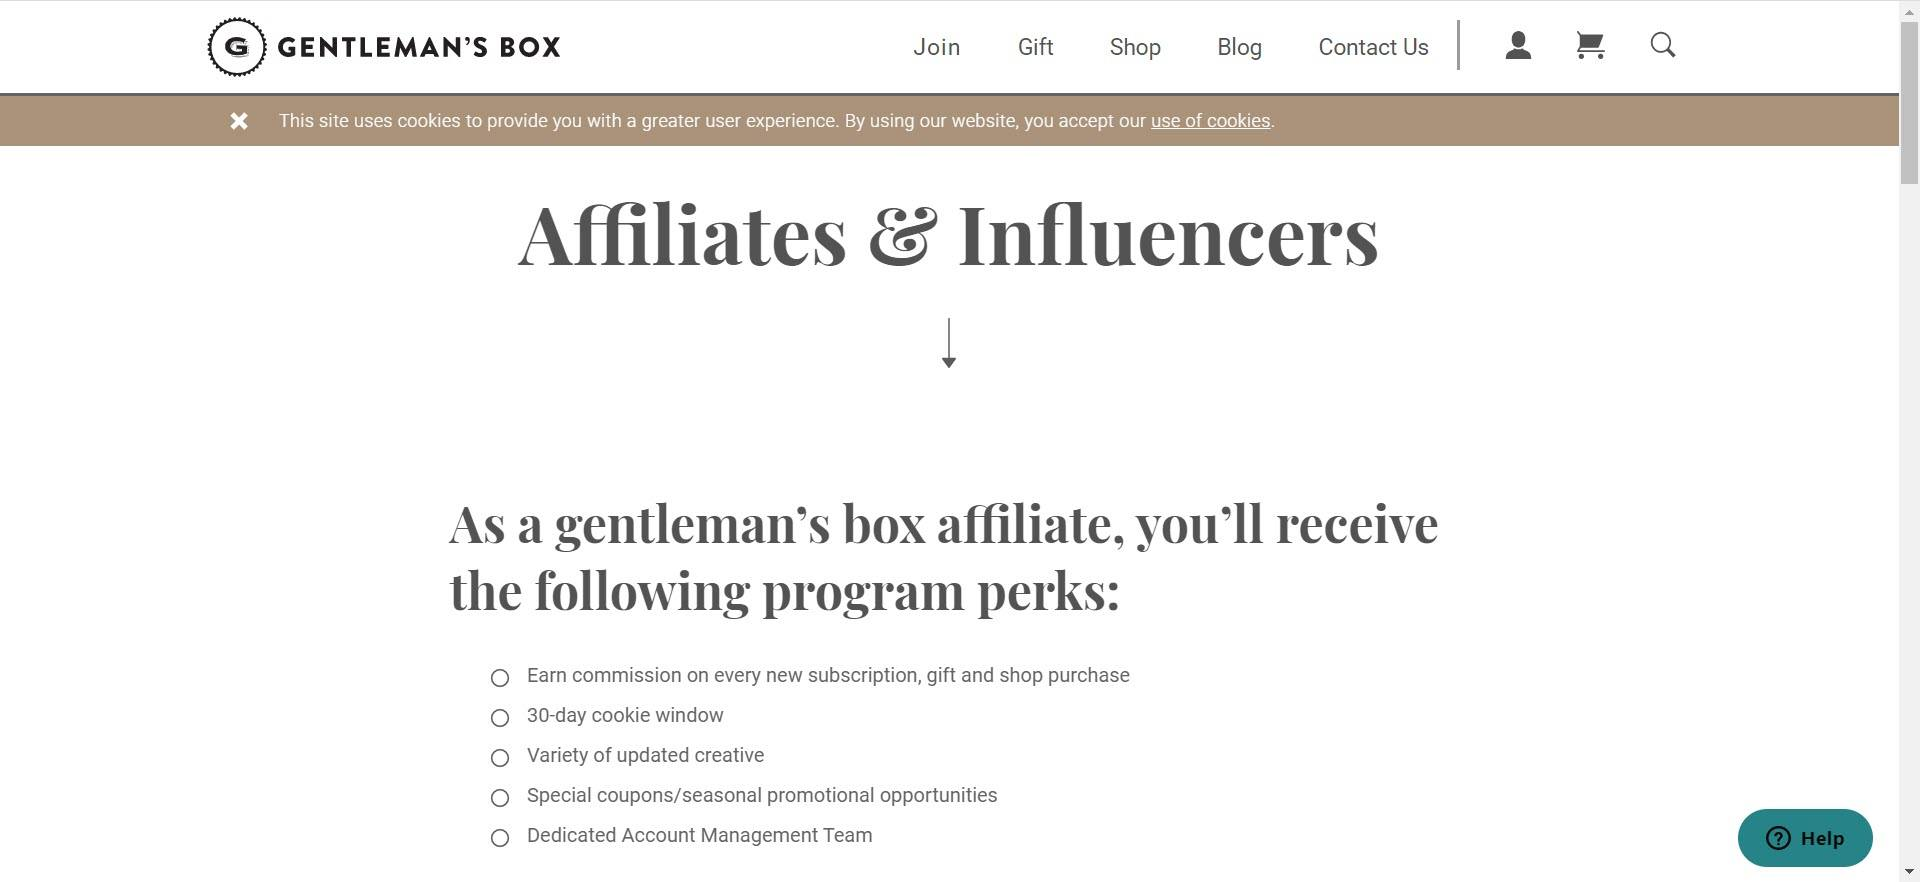 mens clothing affiliate programs - gentlemans box affiliate